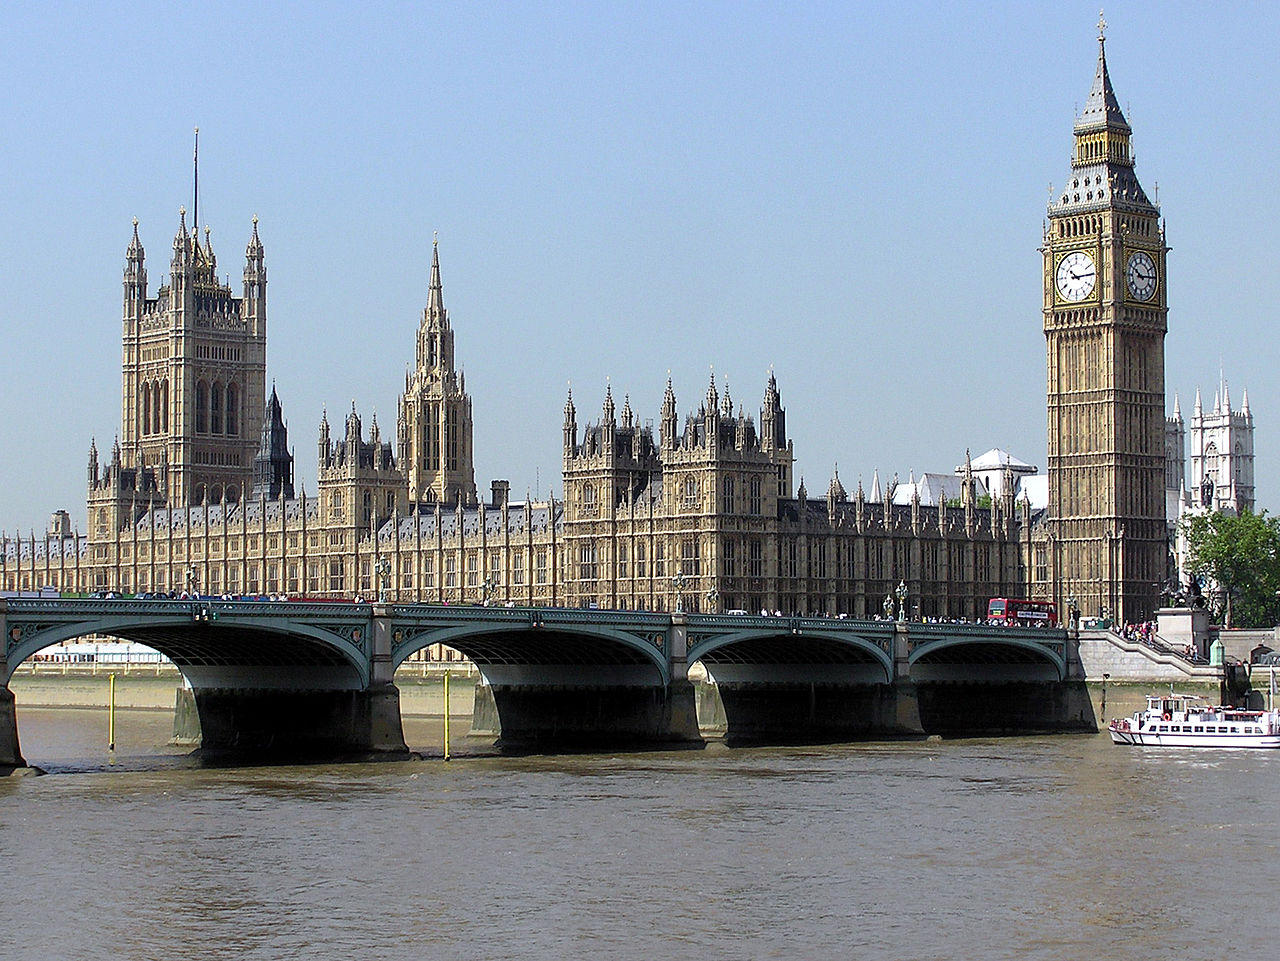 The UK government also reiterated its unchanged stance that the situation in Kashmir remains an issue for India and Pakistan to find a lasting political resolution to the issue.